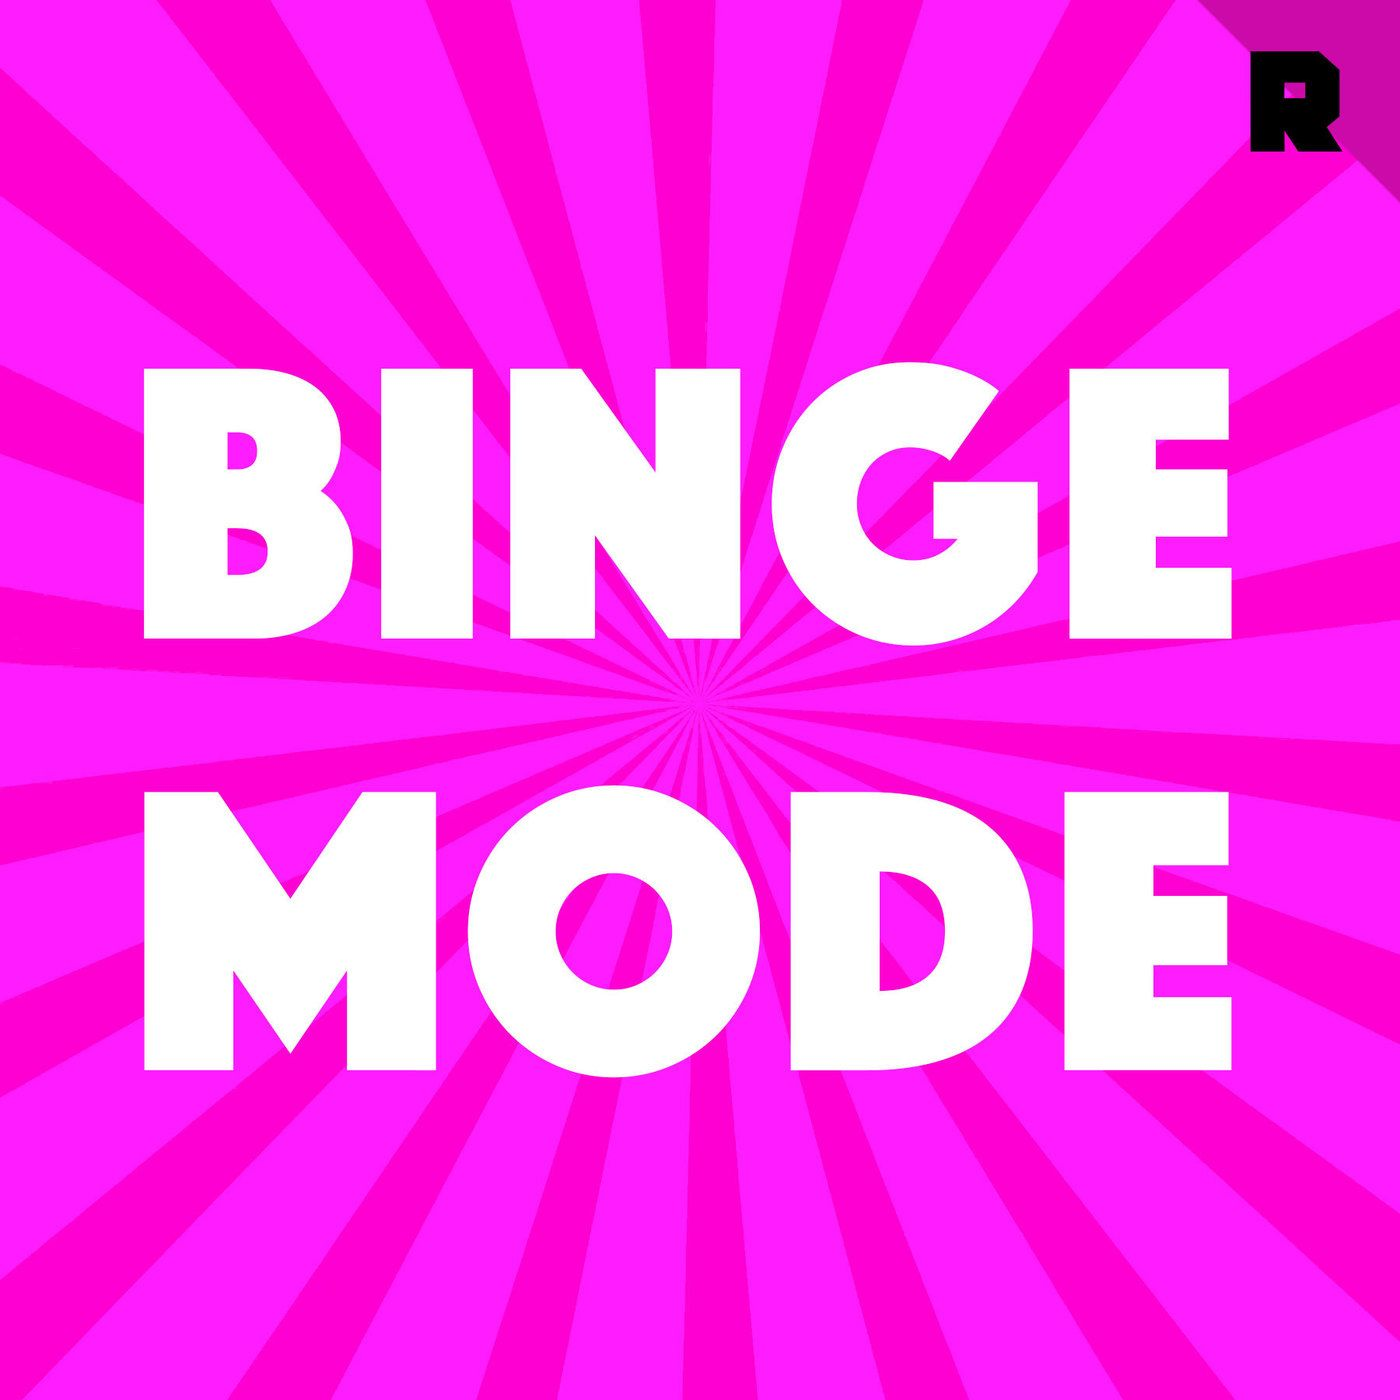 'Binge Mode: Weekly' Trailer